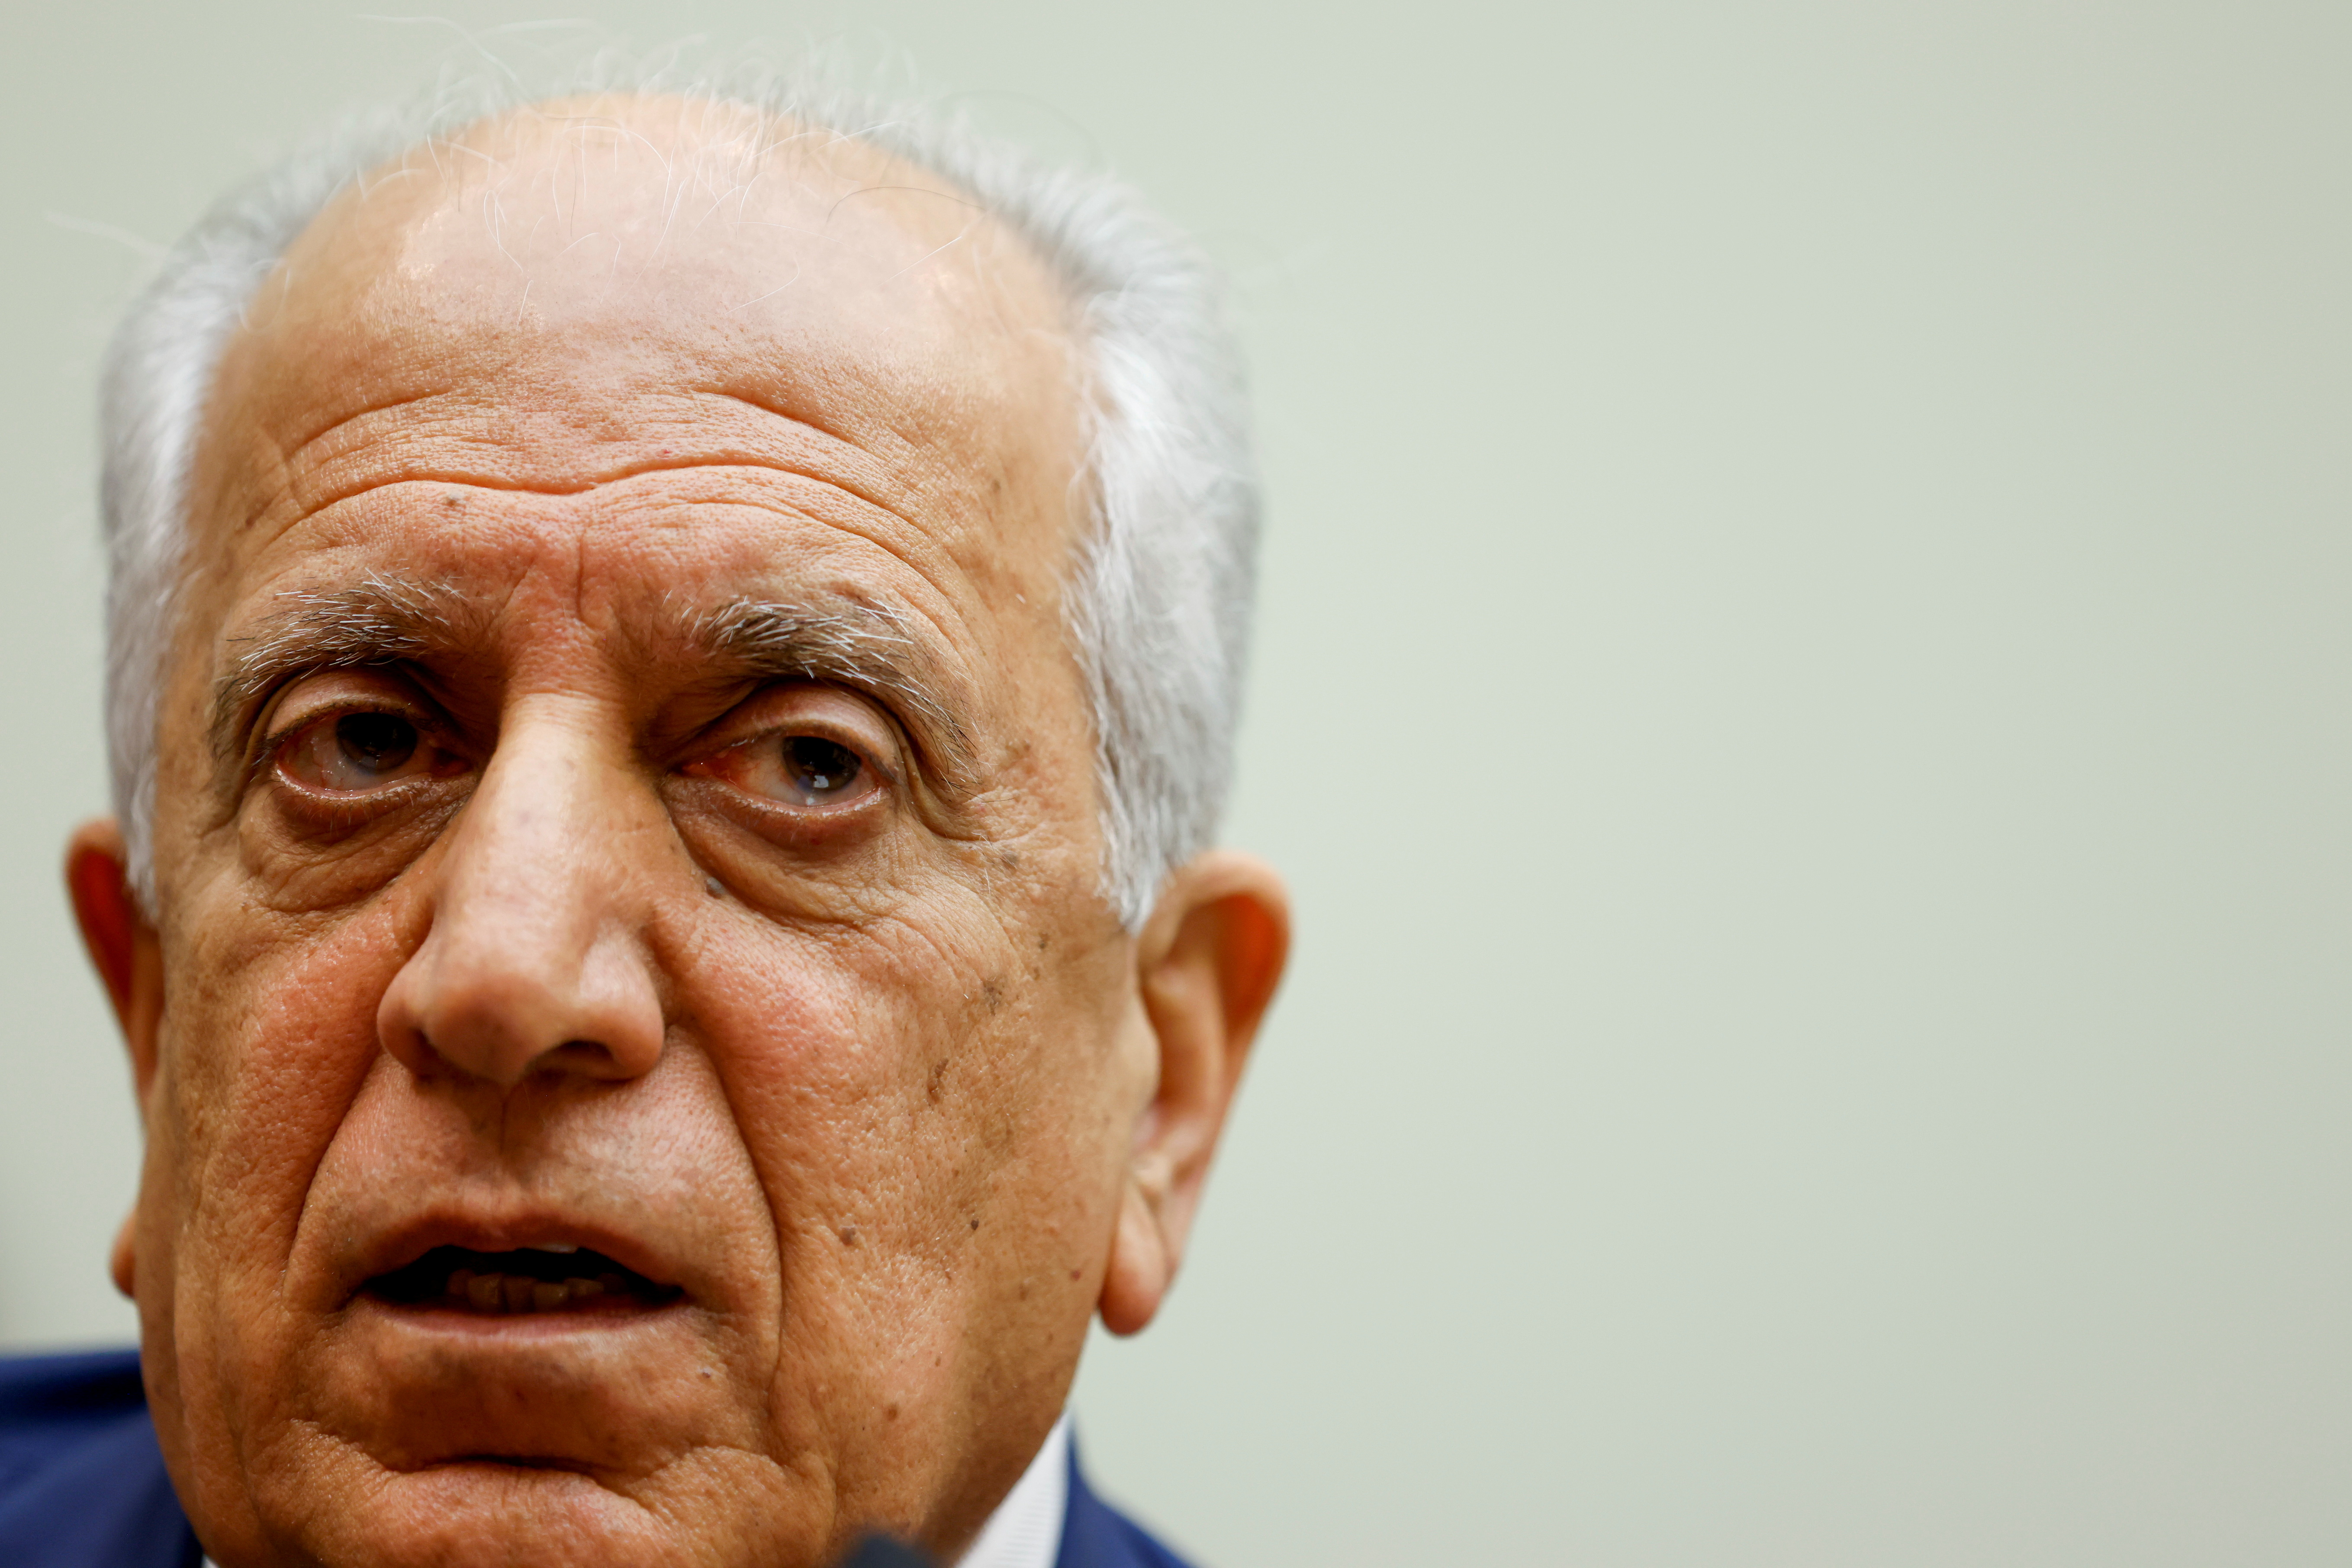 U.S. Special Representative for Afghanistan Reconciliation Zalmay Khalilzad testifies about the potential withdrawal of U.S. military forces from Afghanistan at a hearing before the House Foreign Affairs Committee on Capitol Hill in Washington, U.S. May 18, 2021.  REUTERS/Jonathan Ernst